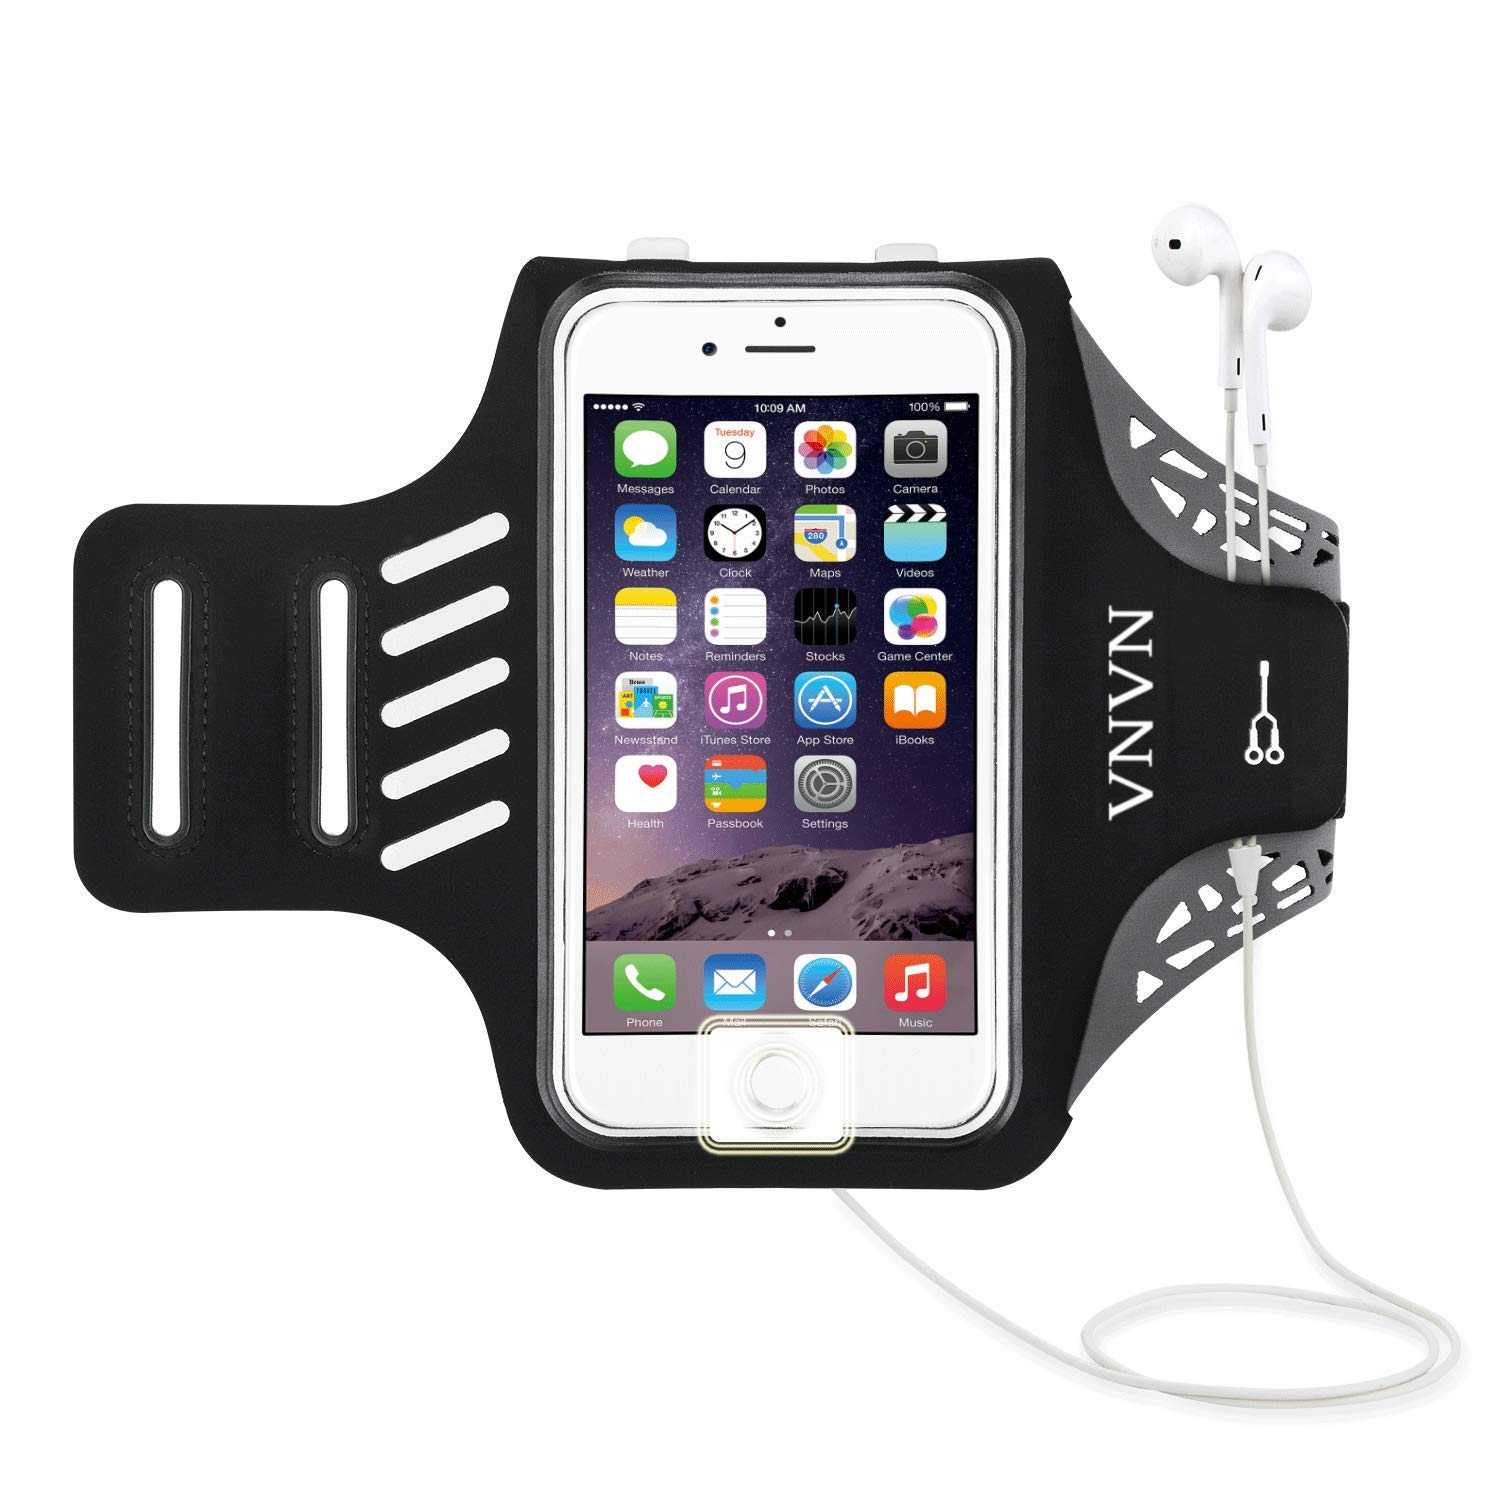 Armband Arm Band Case For Iphone X Hard Back Cover For Iphone 6 6s Plus 7 Plus 8 Plus 5 5s Running Sport Phone Holder Sufficient Supply Armbands Cellphones & Telecommunications